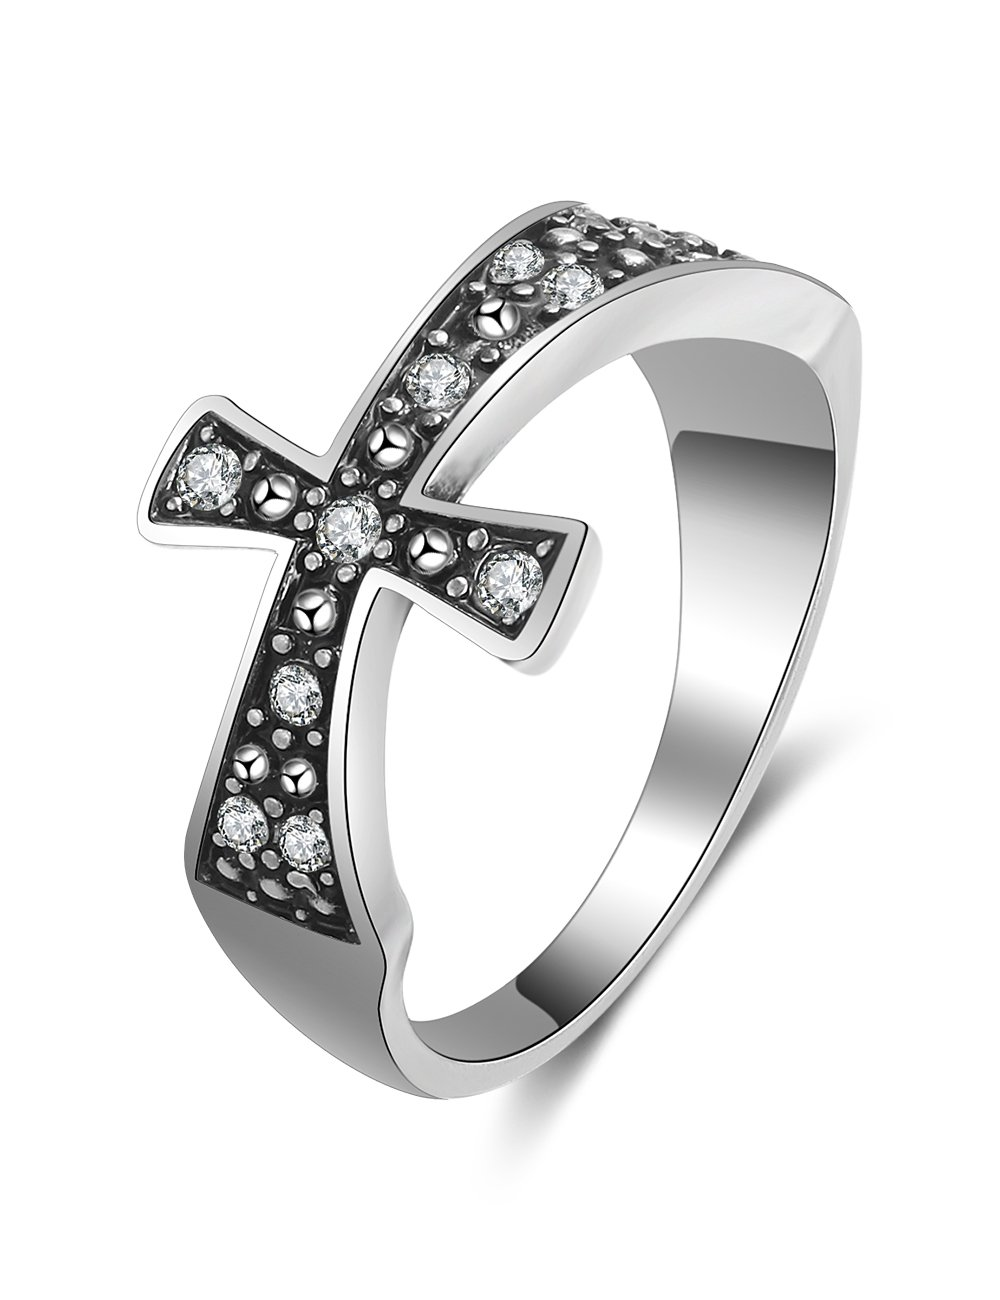 XZP Vintage Style Religion Christian Cross Band Ring Made Swarovski Crystal (8.5) by XZP